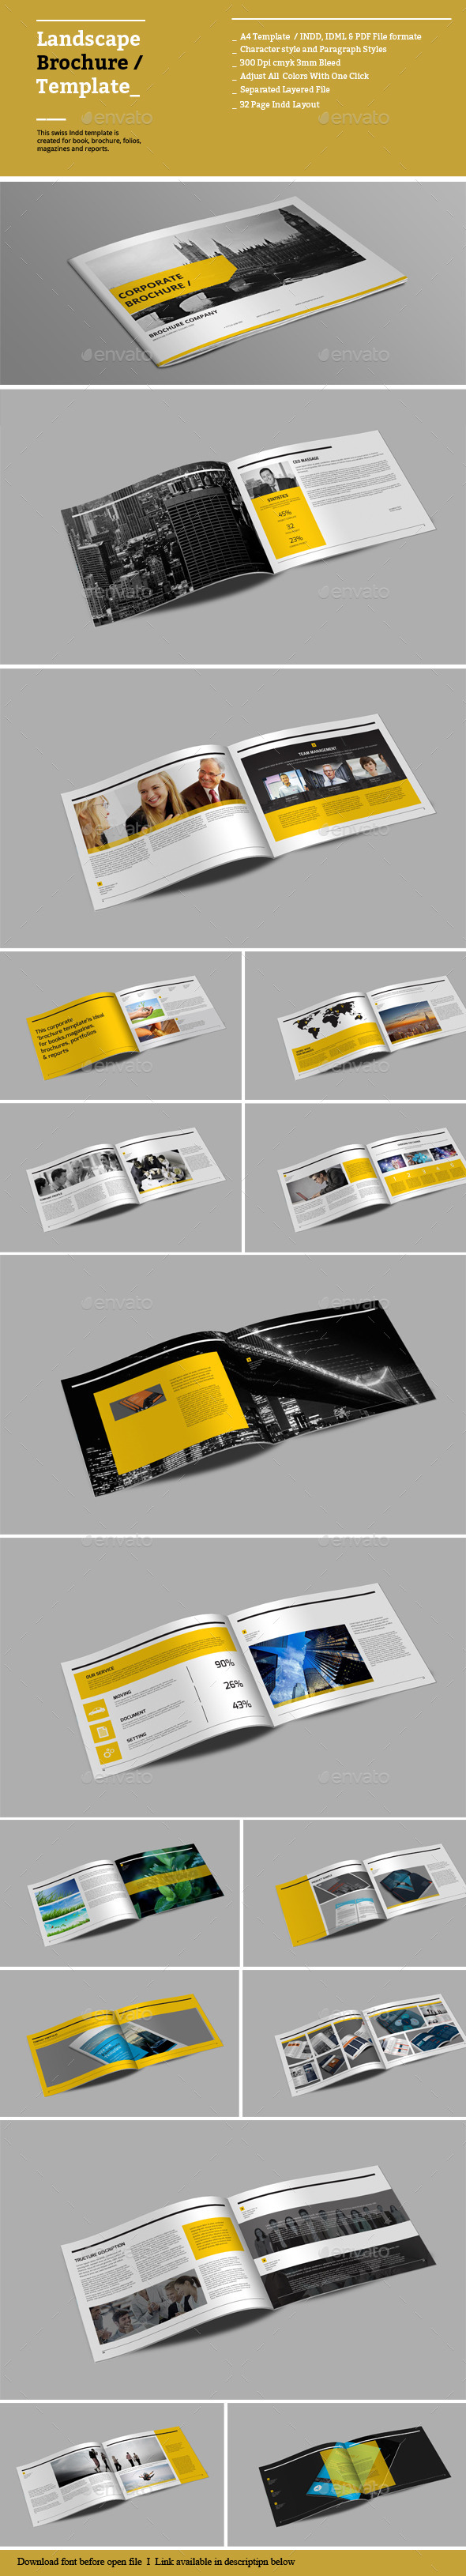 GraphicRiver Landscape Brochure Templates 8879755